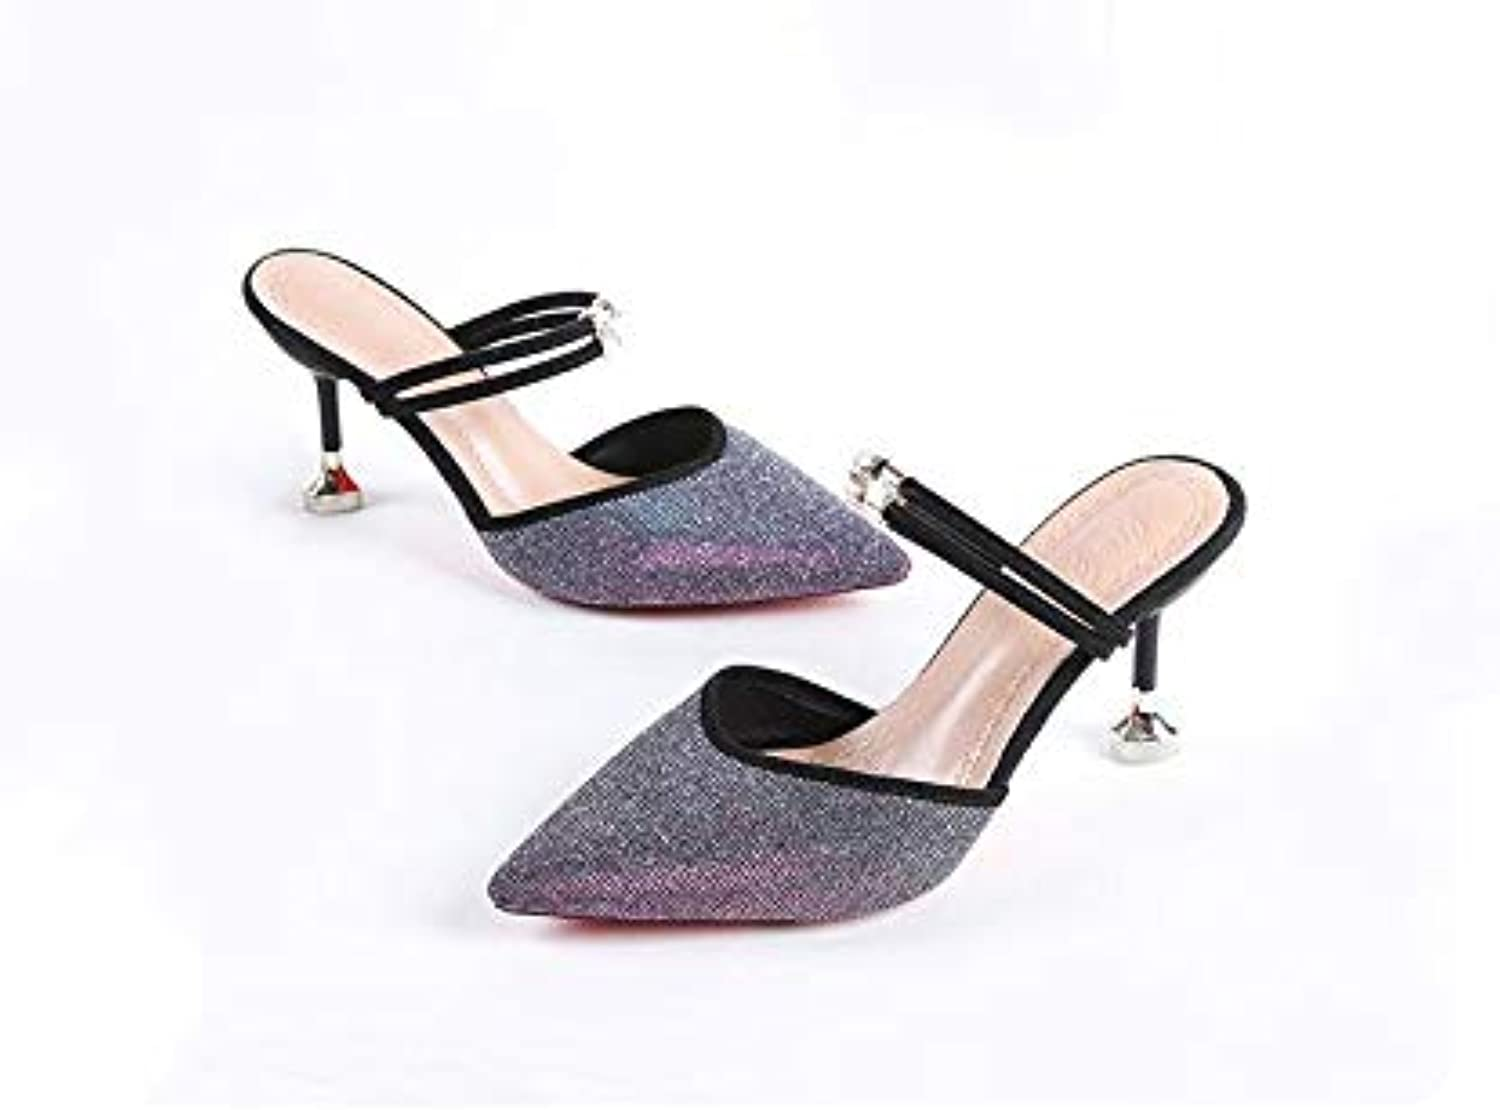 Duduxiaomaibu Heeled Mules for Women, Pointed Toe Slingback Pumps Buckle Kitten Heels Mules Slides Backless Dress Sandals